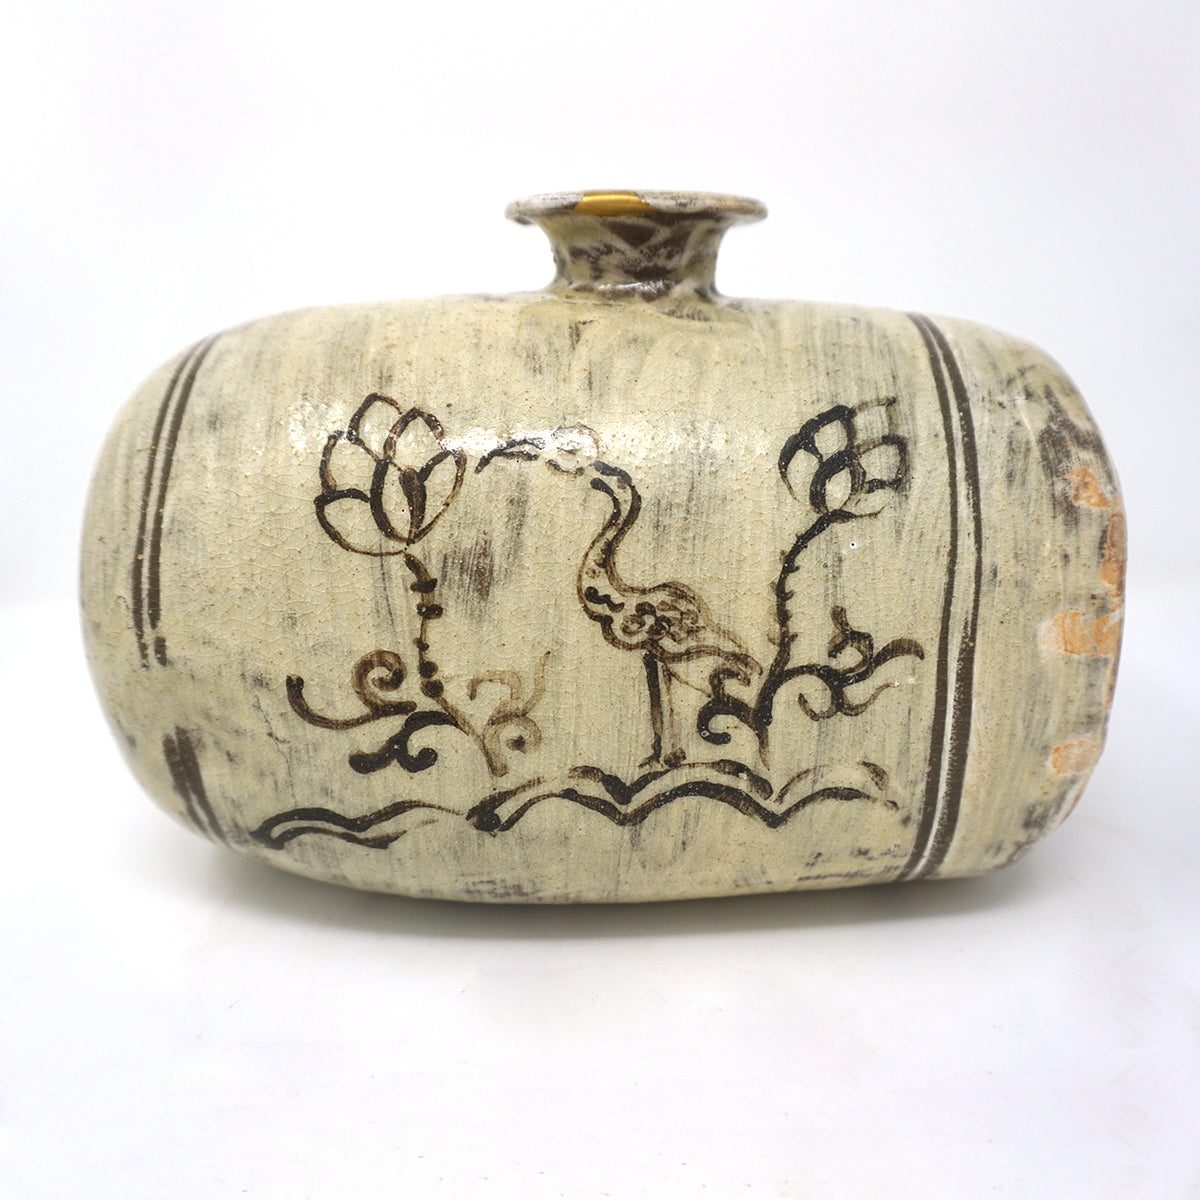 Bunchung Janggun Bottle Vase with Iron Painting from Chosun Dynasty